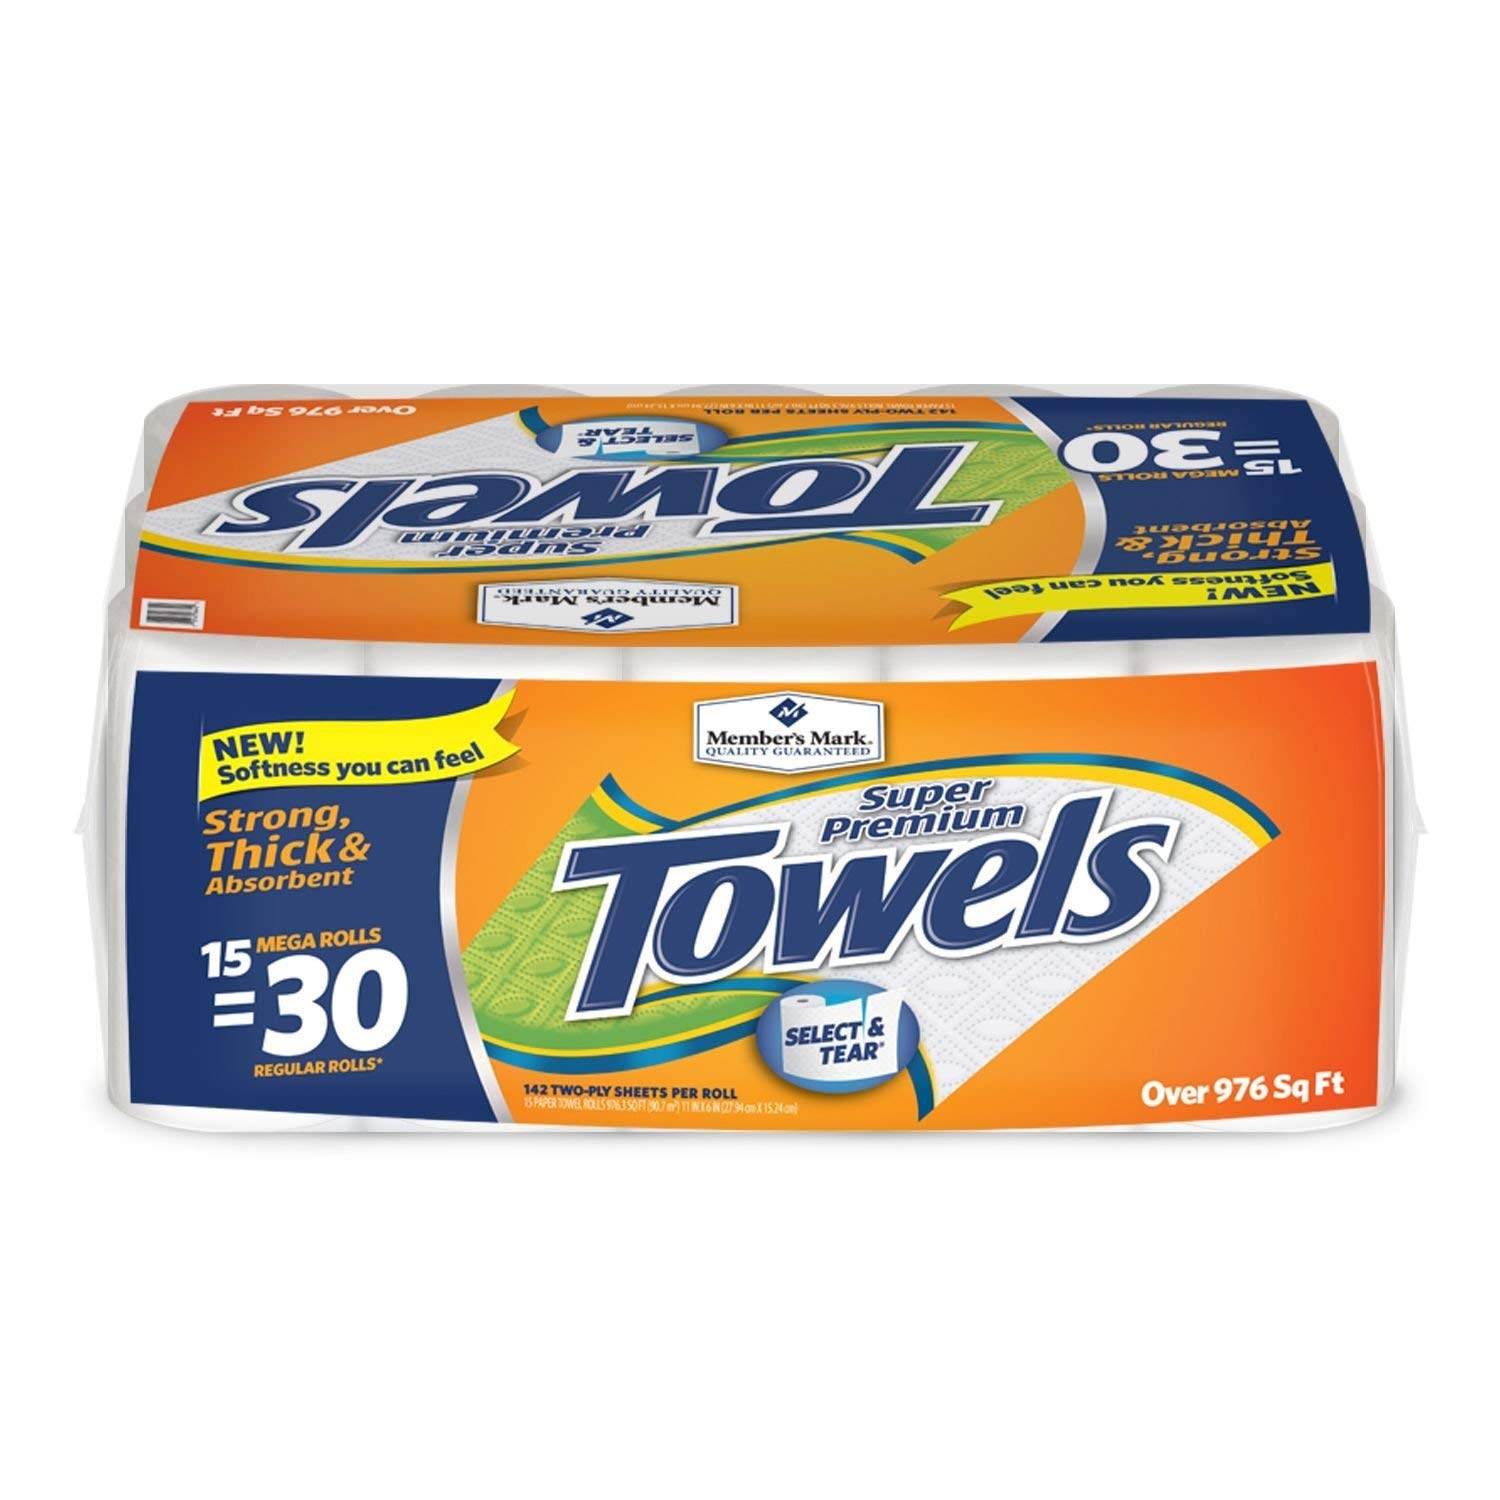 Member's Mark Super Premium Paper Towels 2 Pack (15 Rolls, 150 Sheets per roll) More Absorbent for Even The Toughest